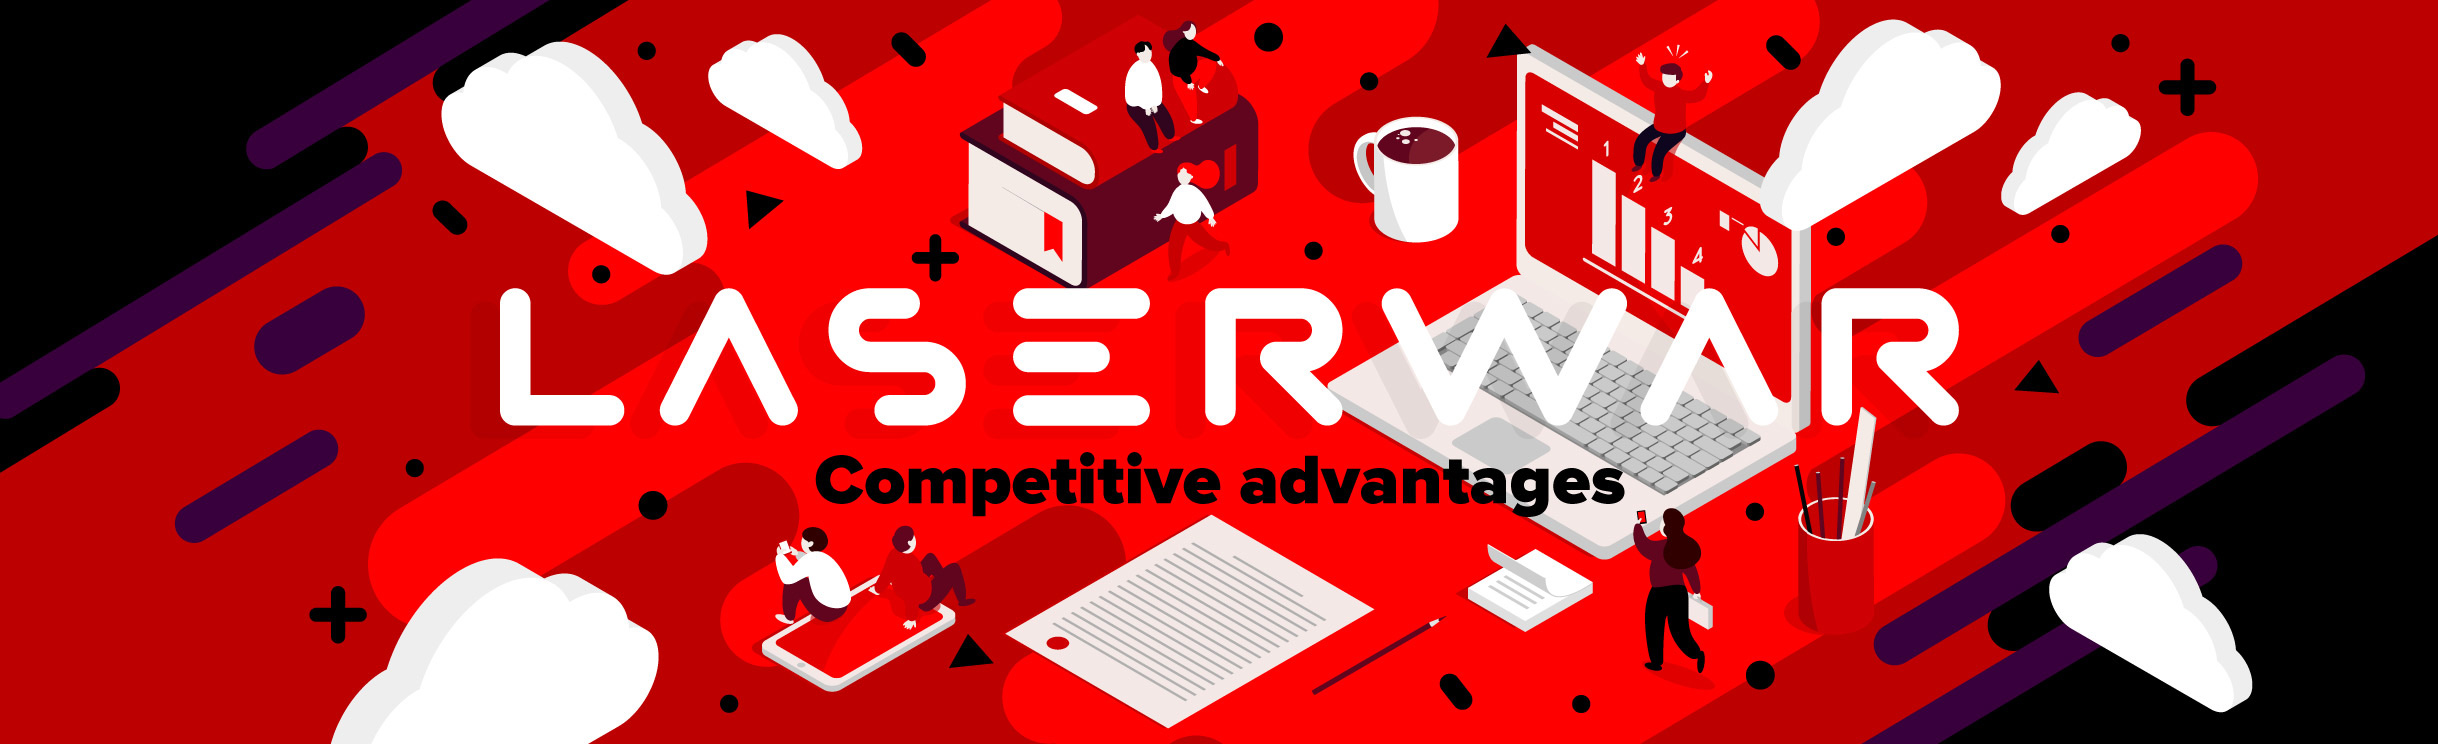 Laserwar competitive advantages